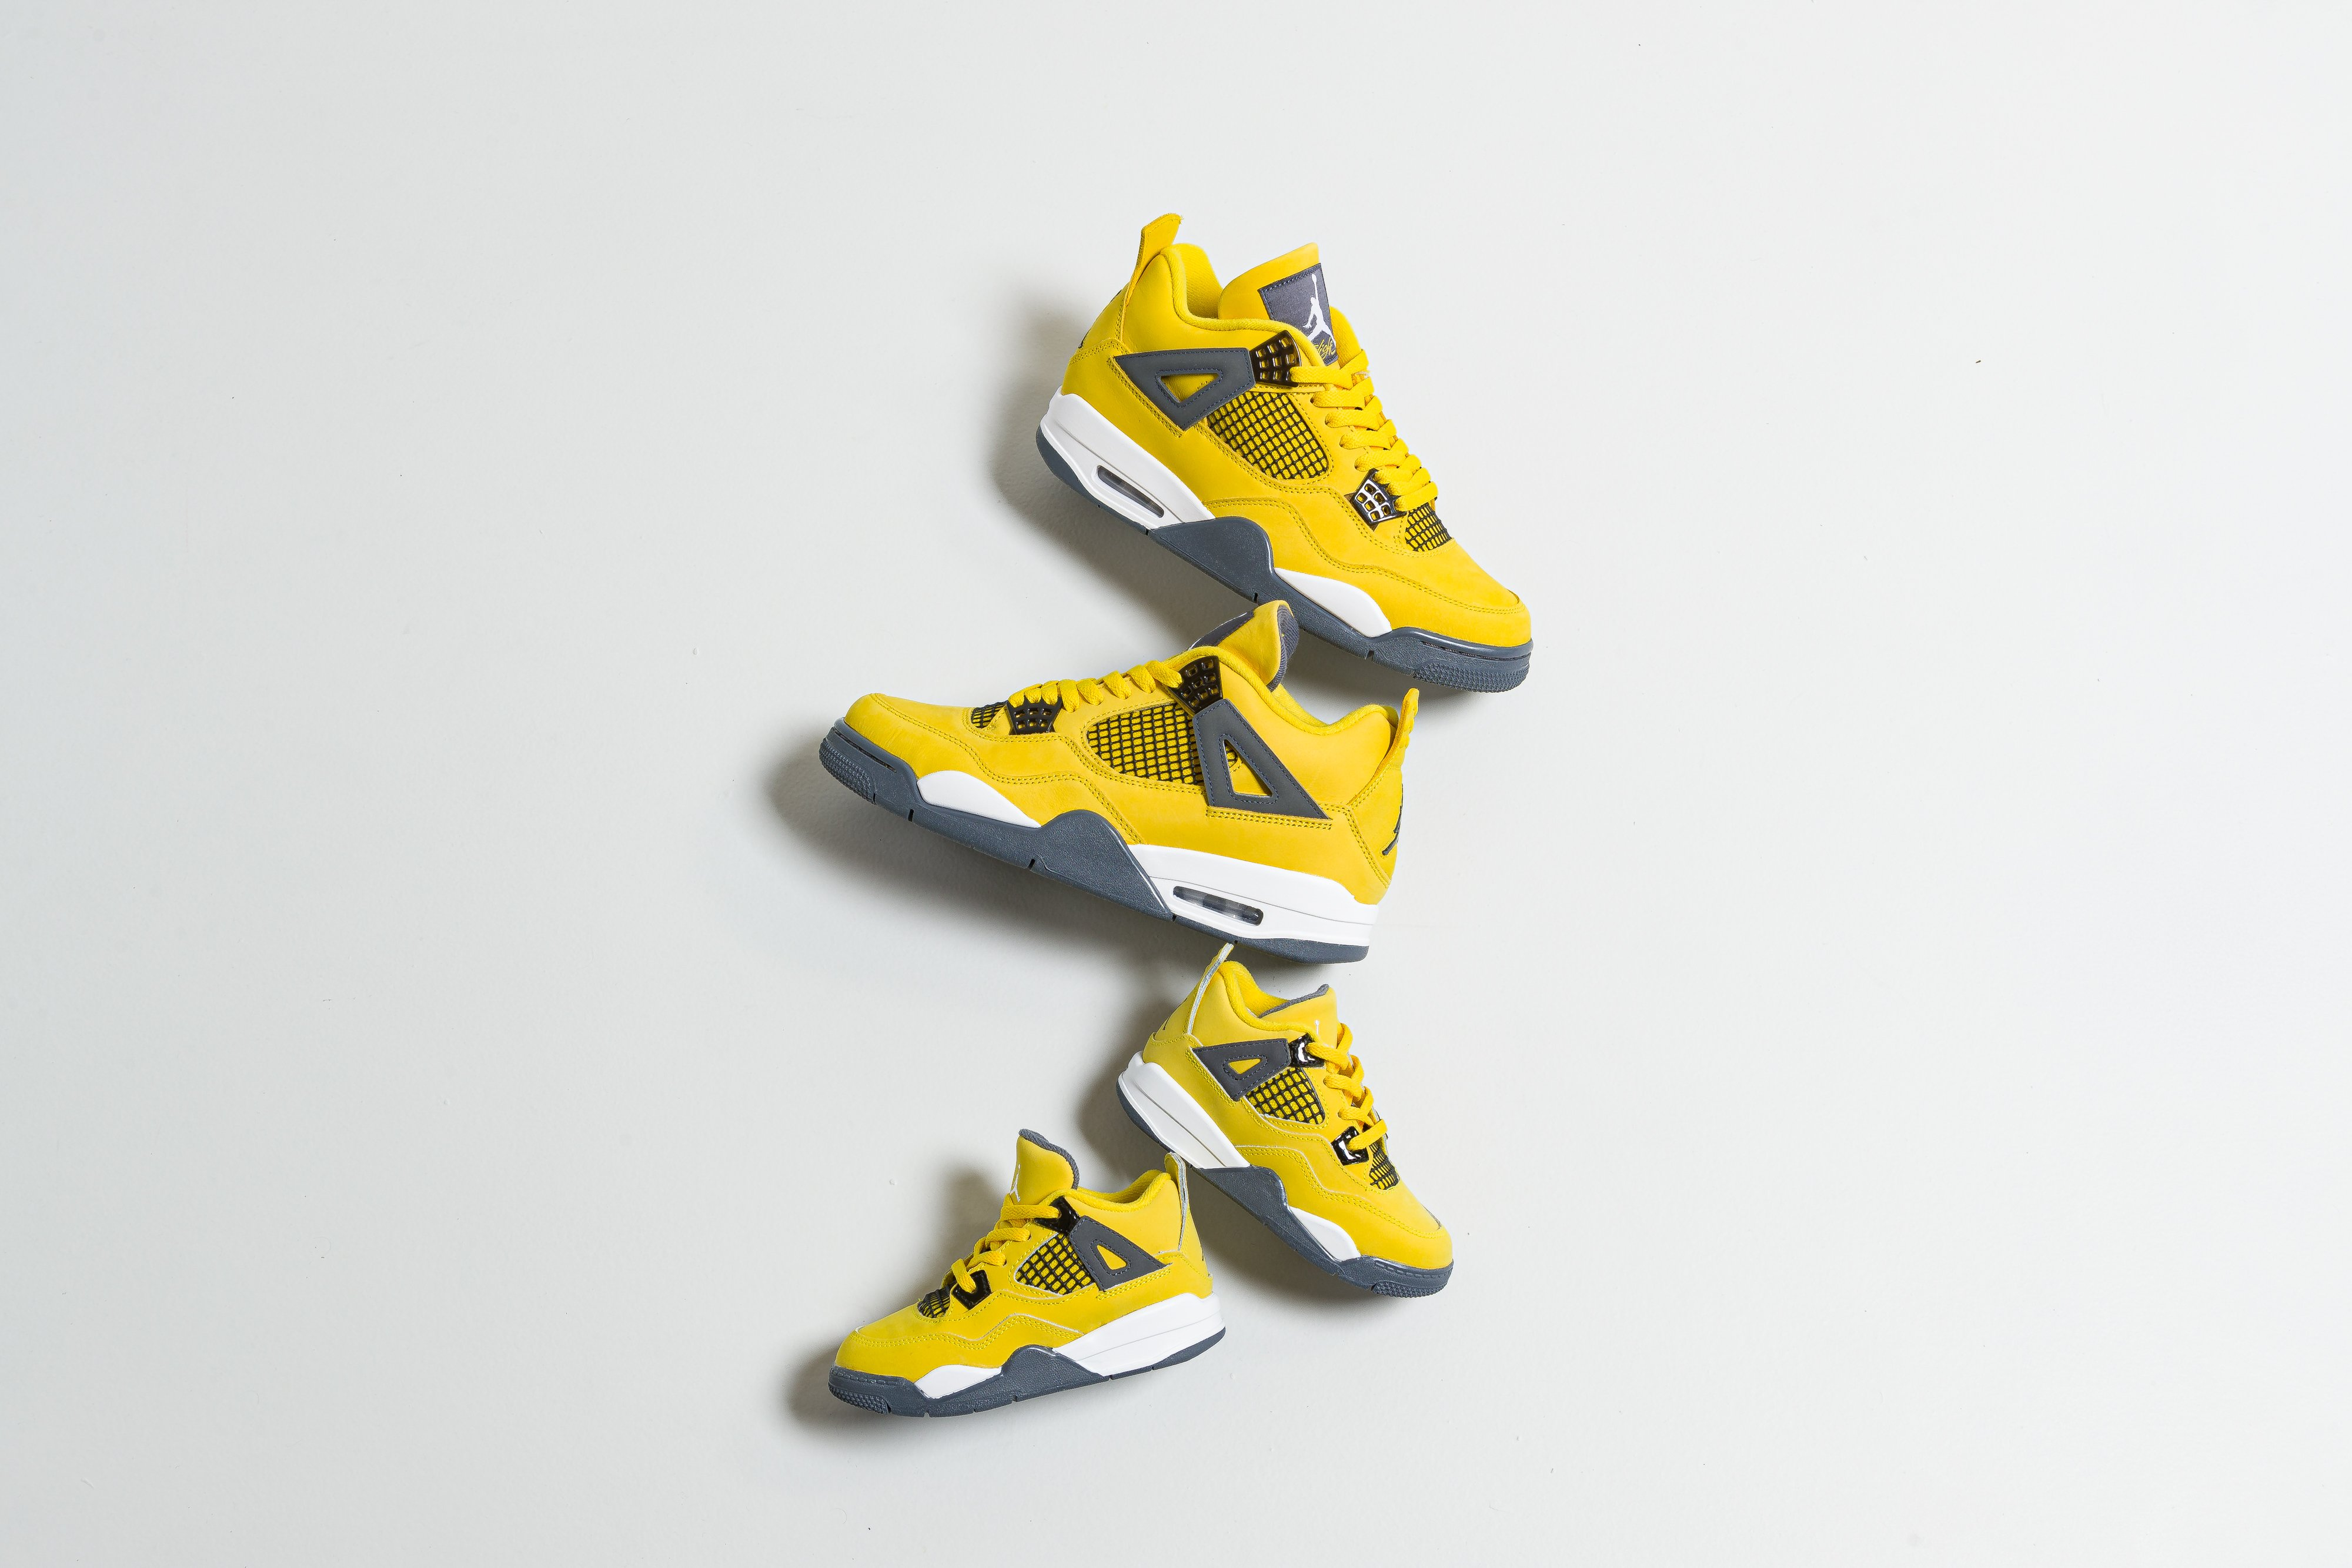 Up There Launches - Nike Air Jordan 4 Retro 'Lightning'